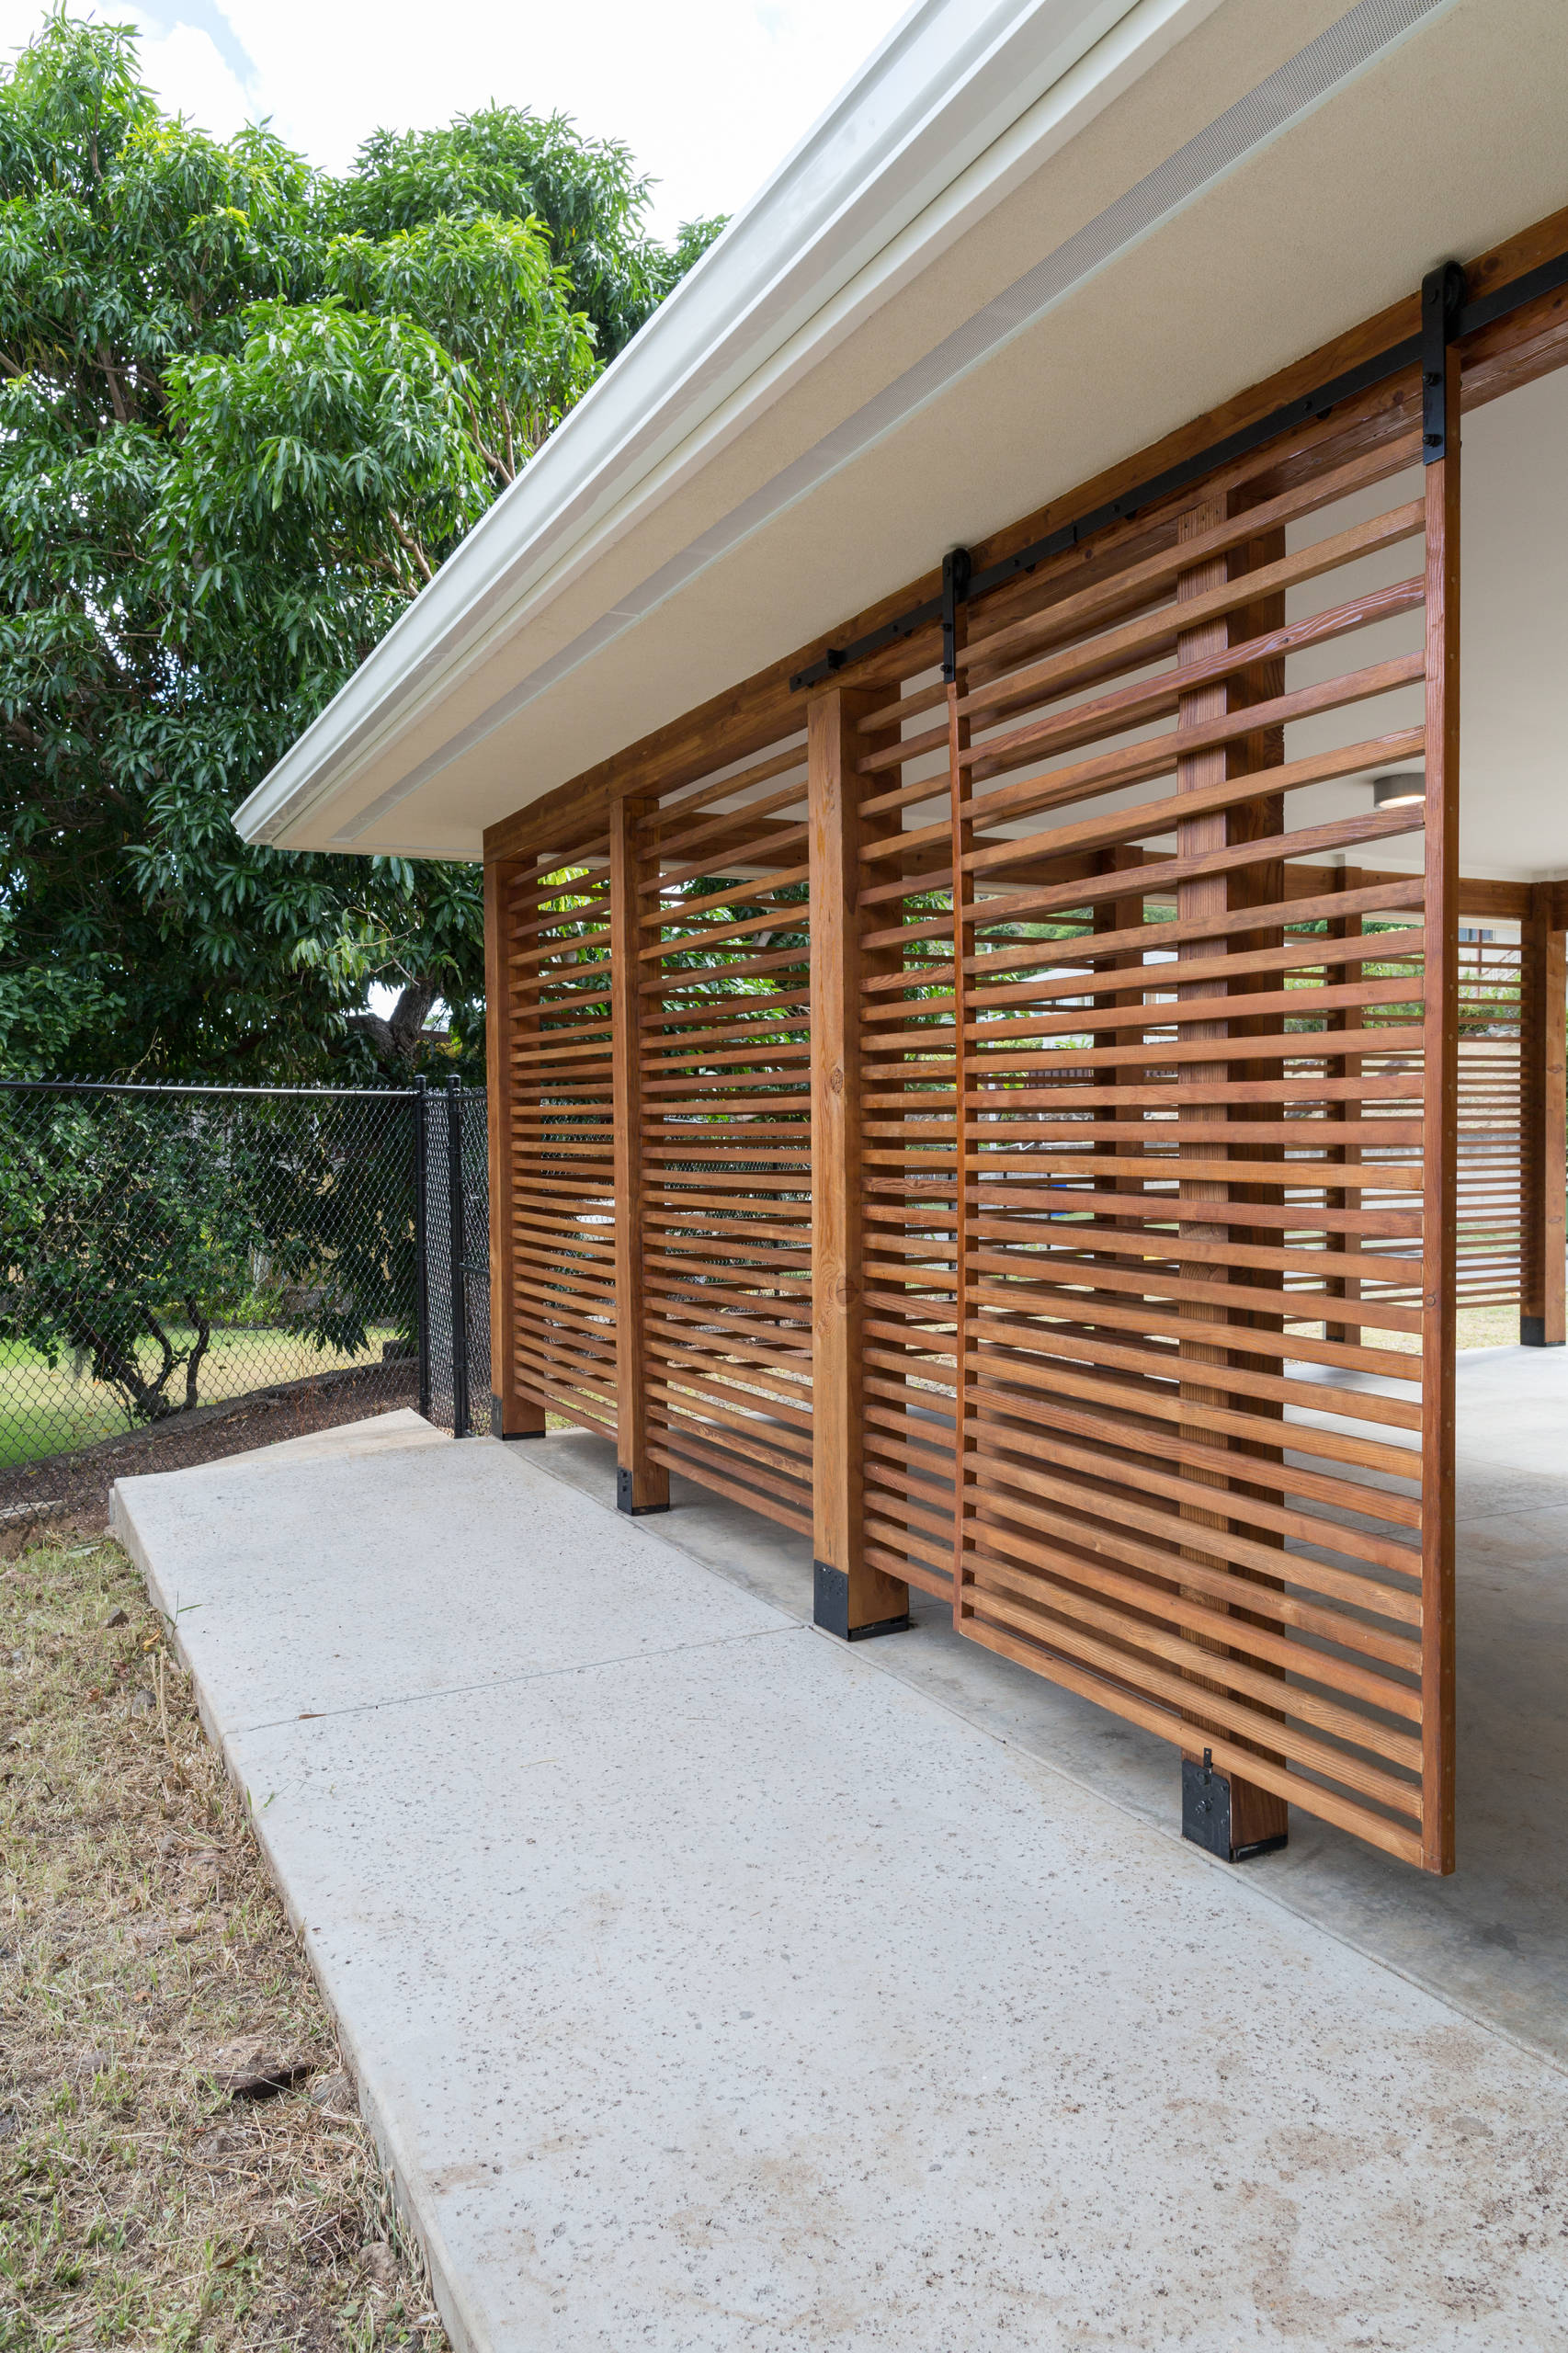 75 Beautiful Carport Pictures Ideas July 2021 Houzz